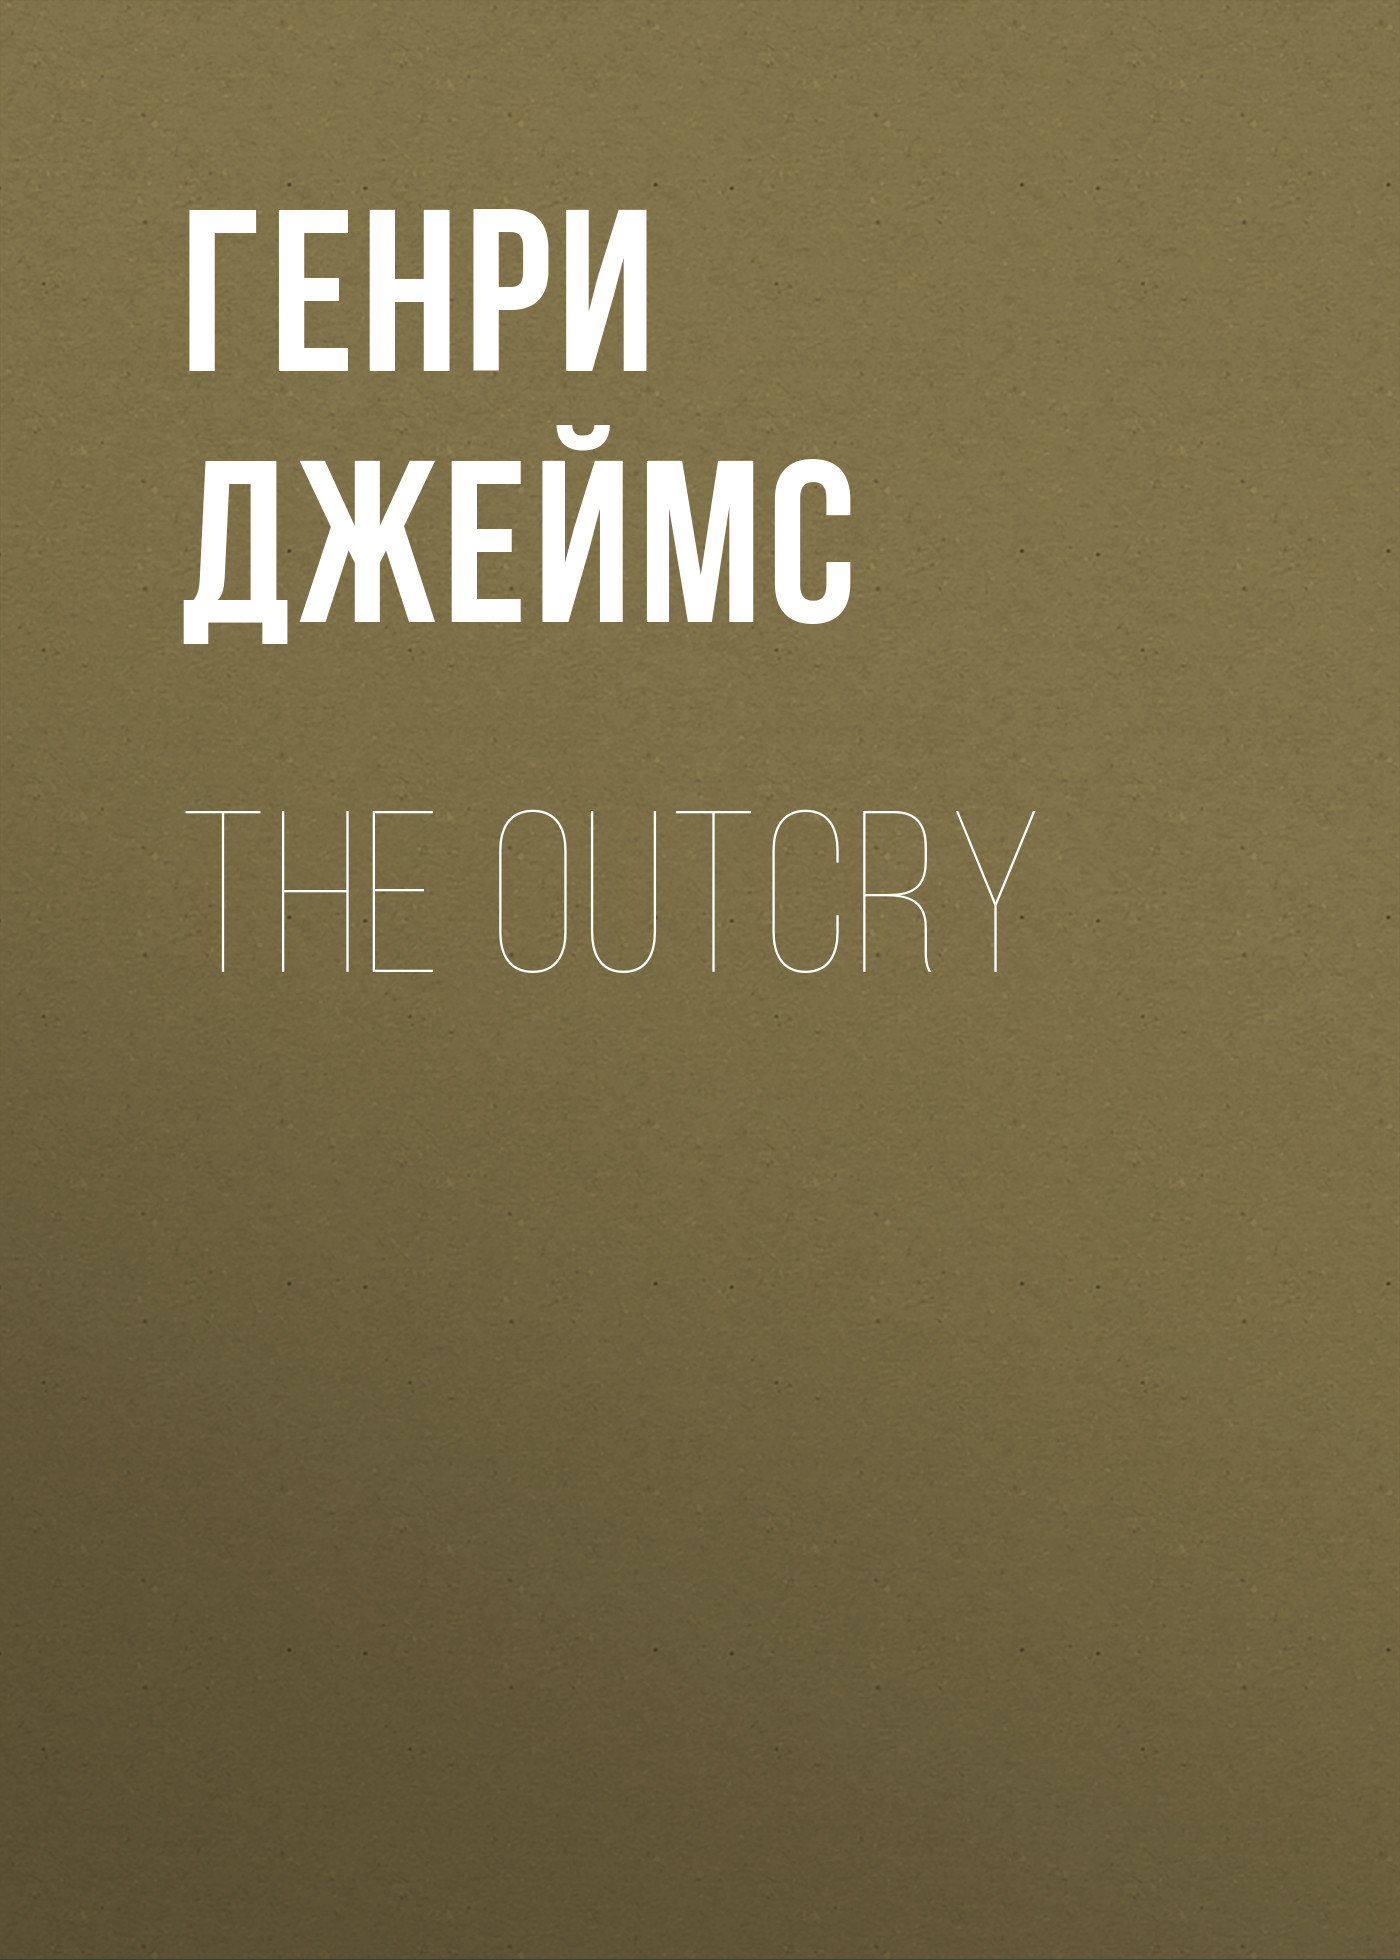 Генри Джеймс The Outcry цена 2017